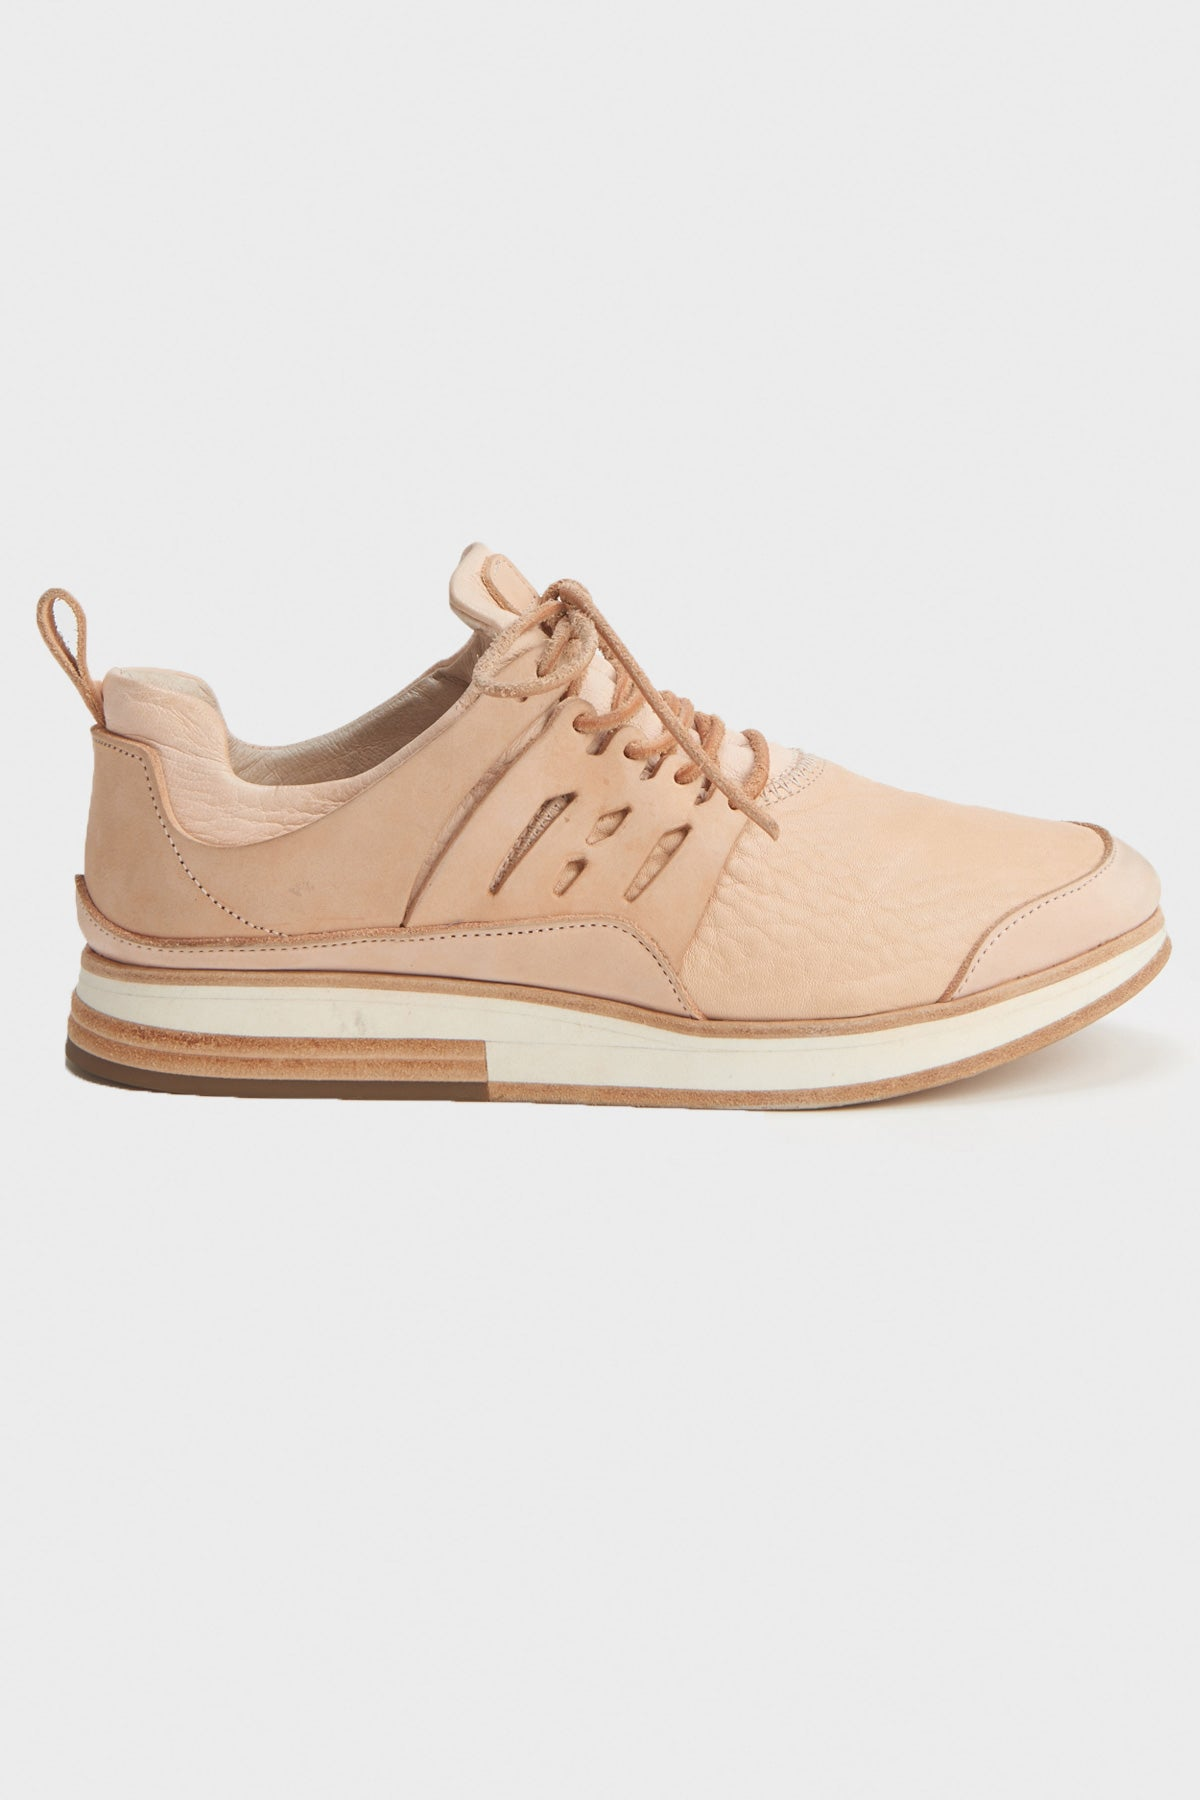 Hender Scheme - MIP-12 - Natural - Canoe Club